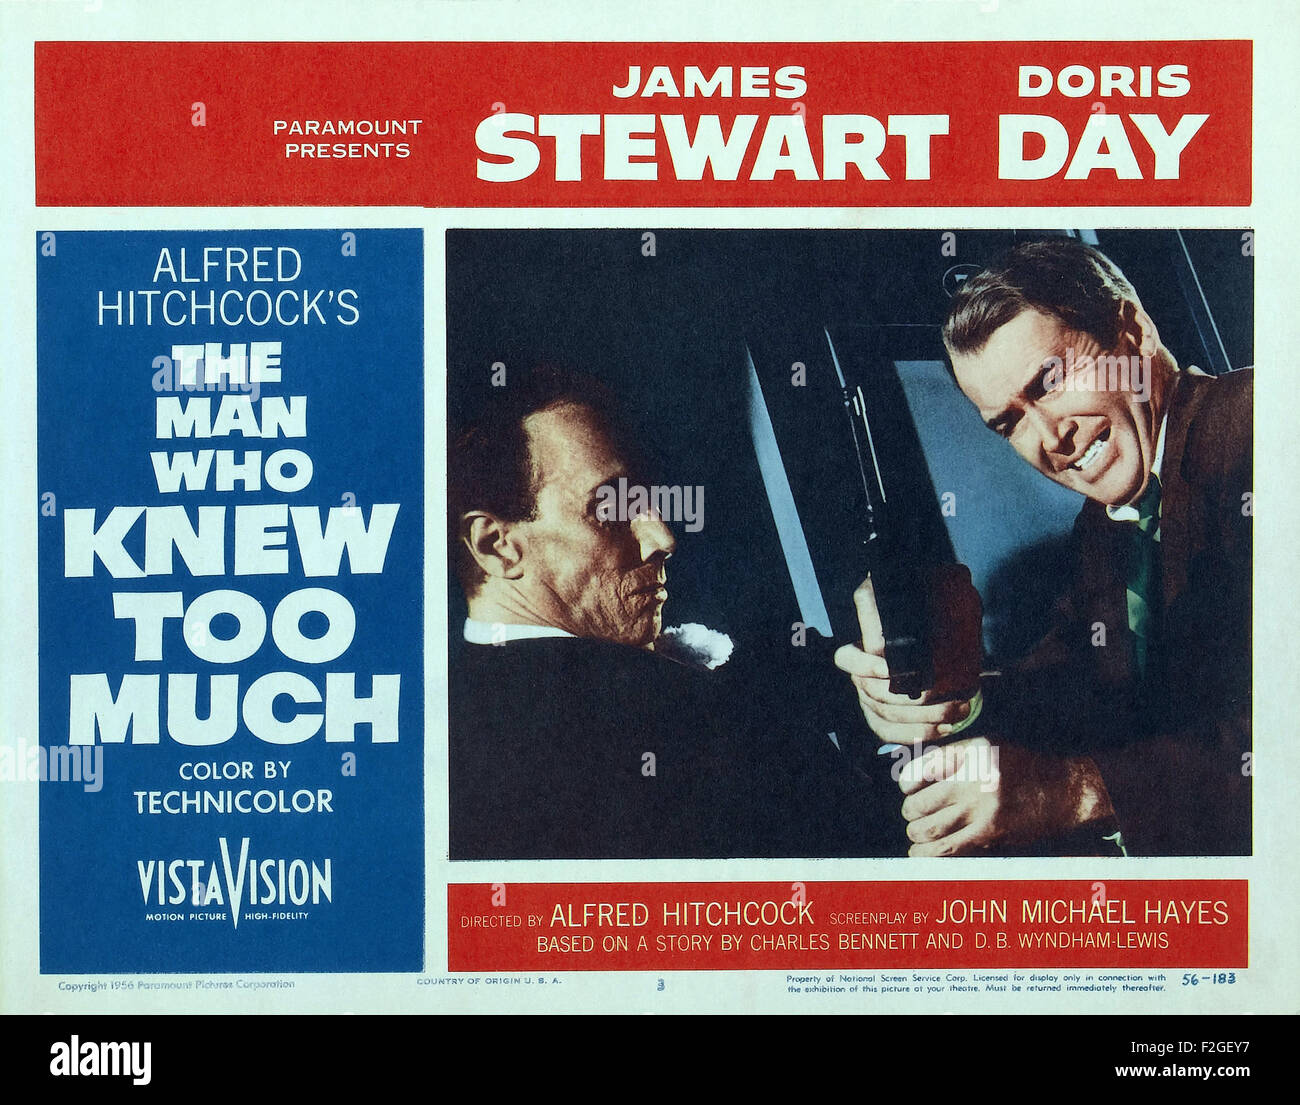 Man Who Knew Too Much, The (1956) 17 - Movie Poster - Stock Image